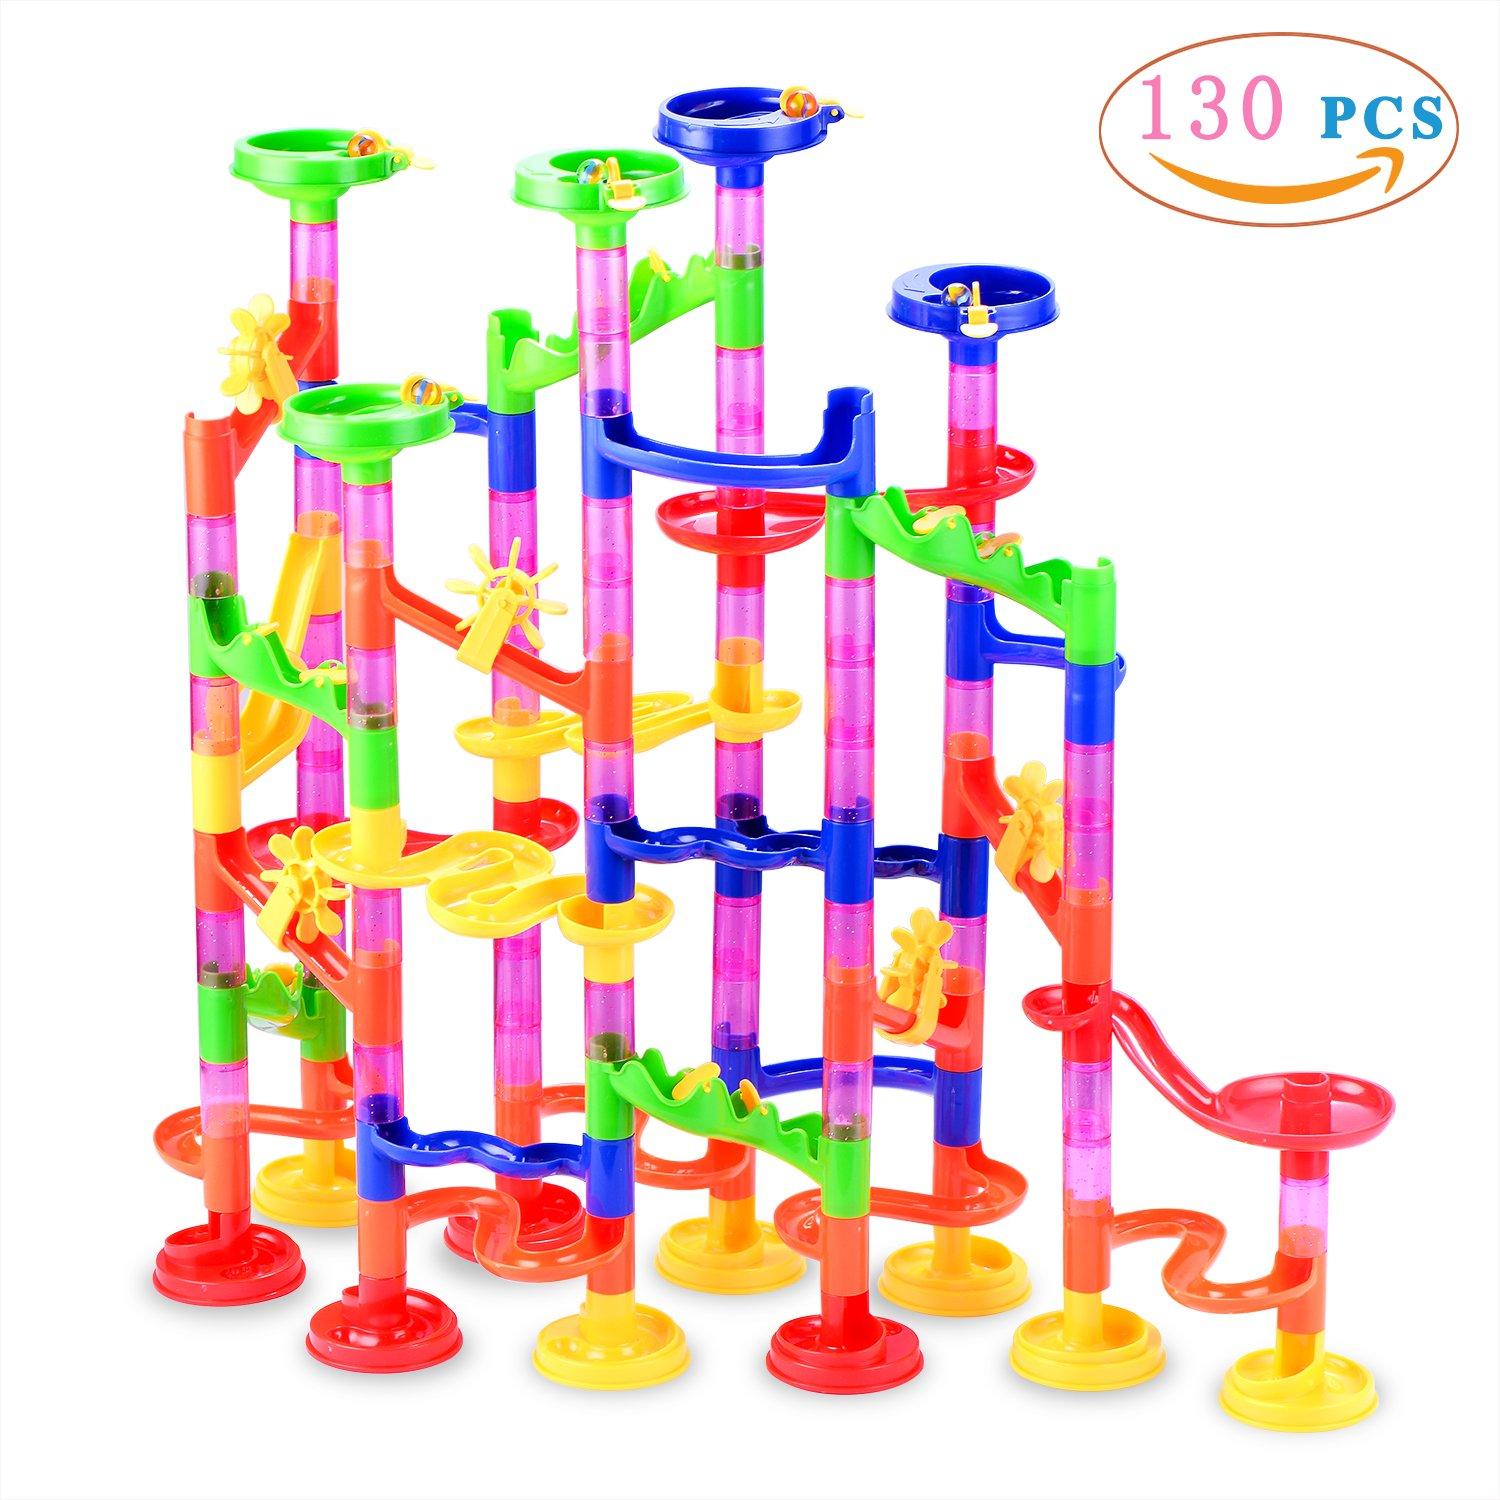 Marble Run Toy, Gifts2U 130Pcs Marbulous Marble Run Starter Construction Child Building Blocks Toys With Glass Marbles for Kids and Parent-child Marble Game